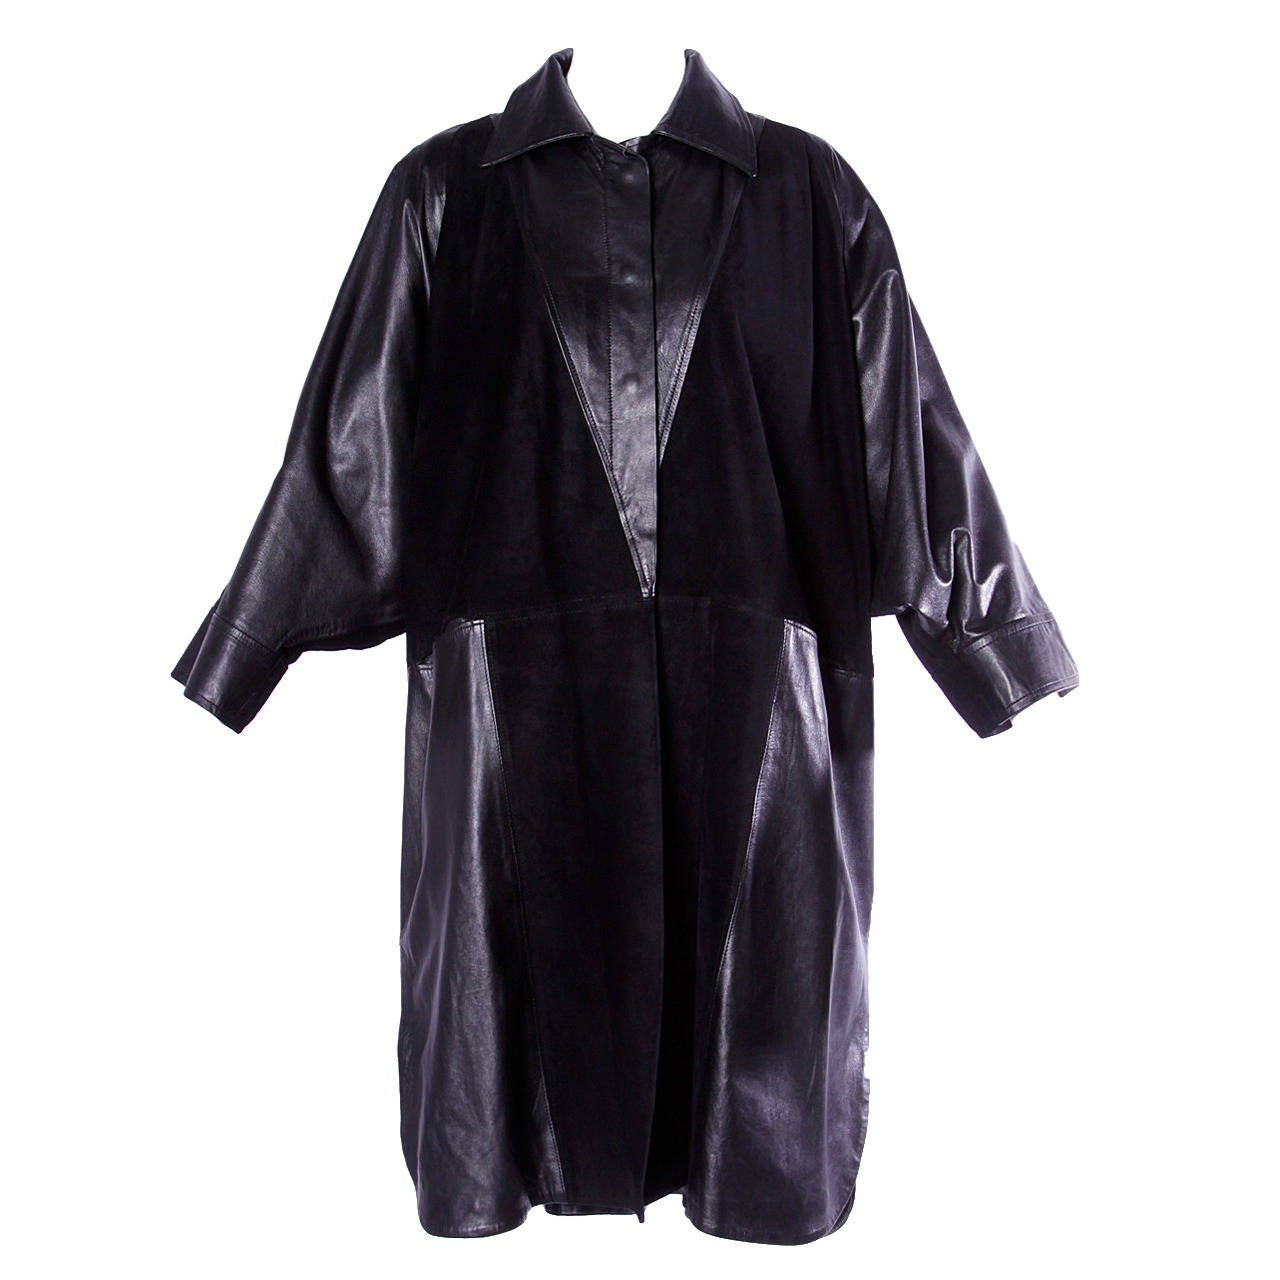 Jean Claude Jitrois Vintage 1980s 80s Black Leather Batwing or Cocoon Coat